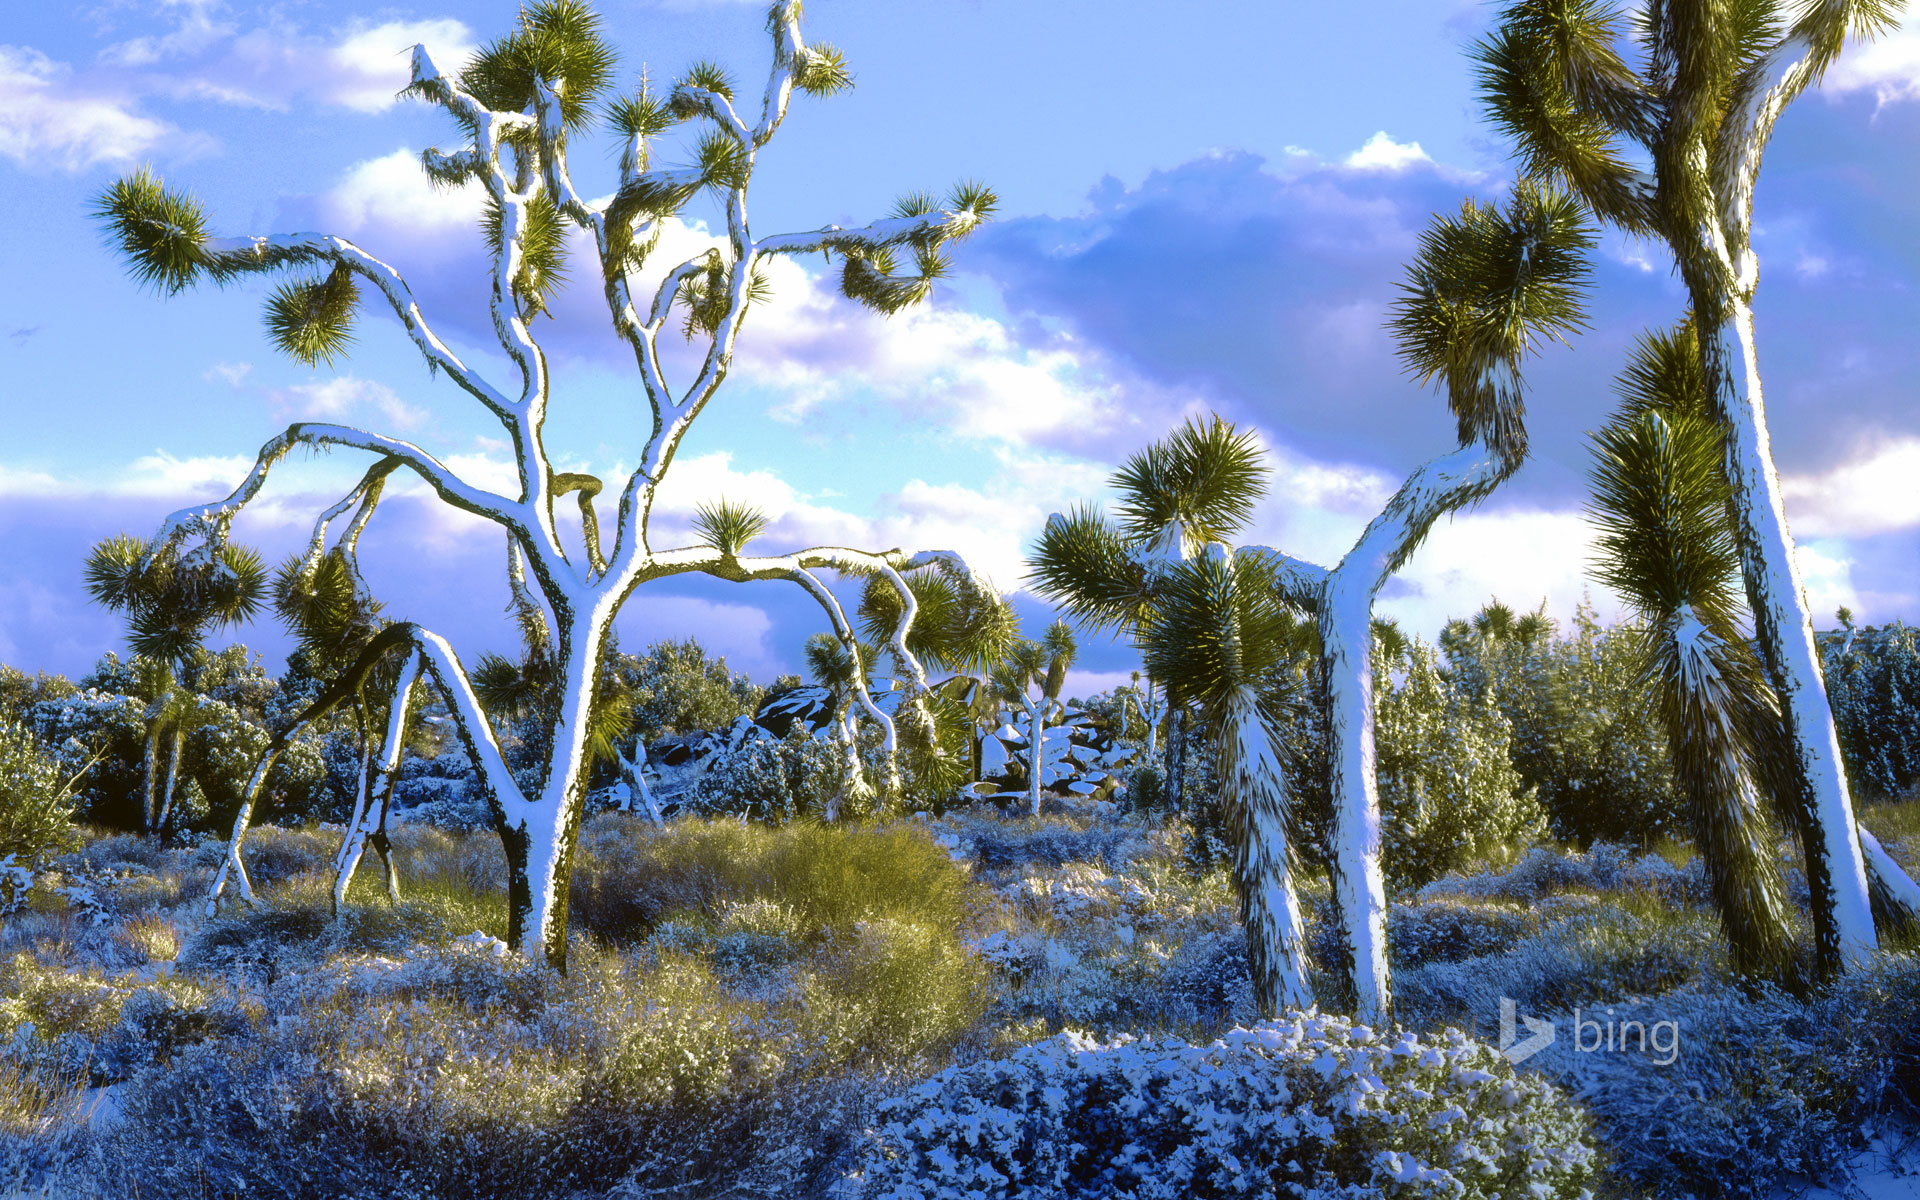 Snow-covered Joshua trees, Joshua Tree National Park, California, USA